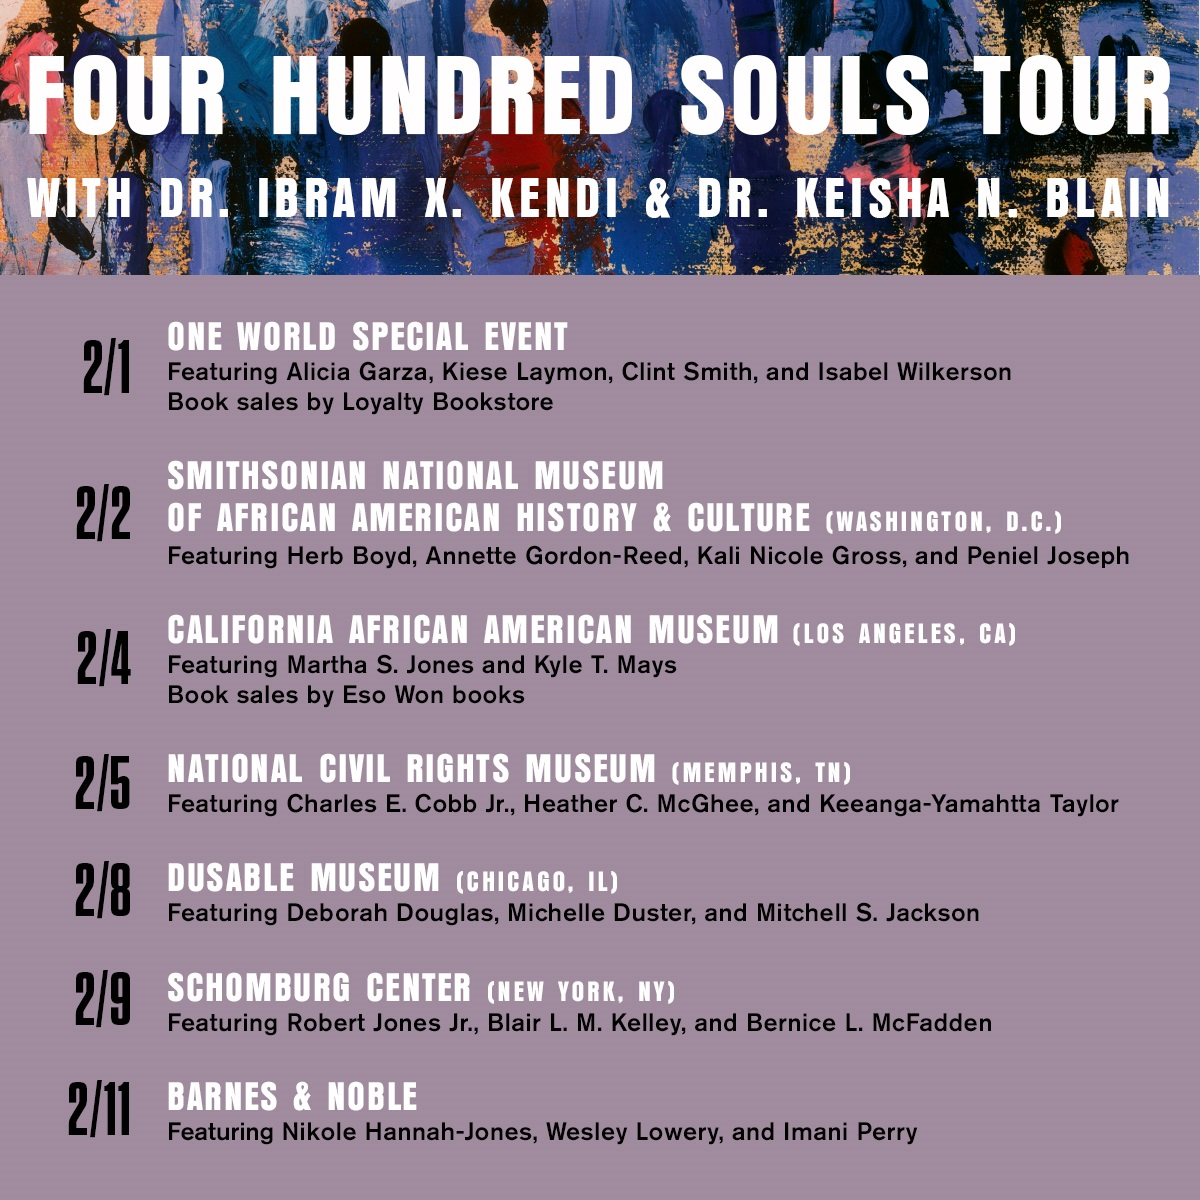 .@DrIbram & I are so excited to announce the dates of our #virtual #book tour for #FourHundredSouls! We're making stops at @NMAAHC, @SchomburgCenter, @BNBuzz & more! Please join us! See the link below for details. @penguinrandom @OneWorldLit